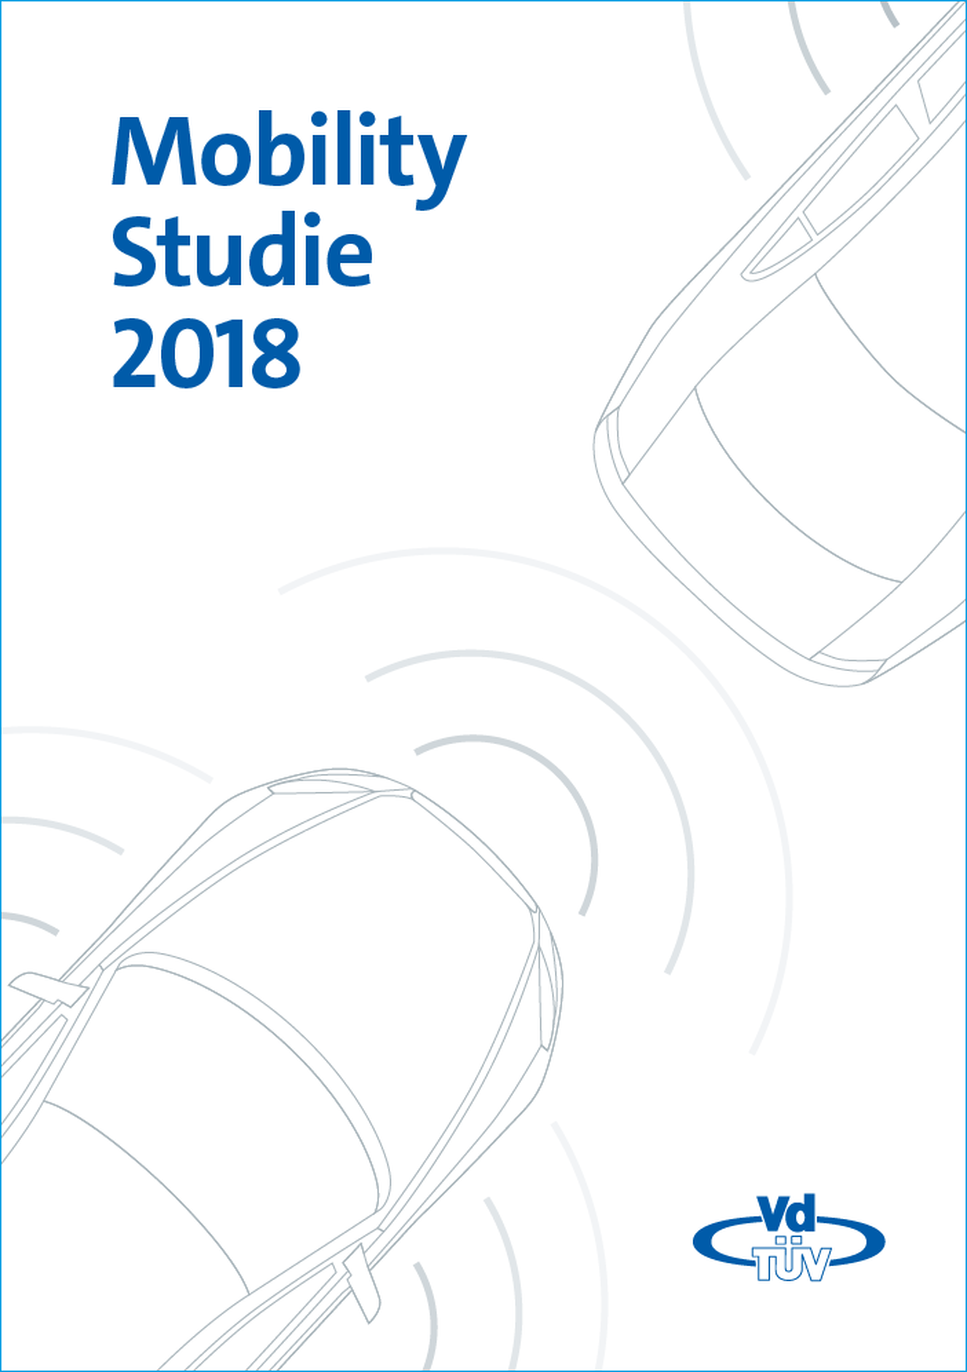 Mobility Studie 2018